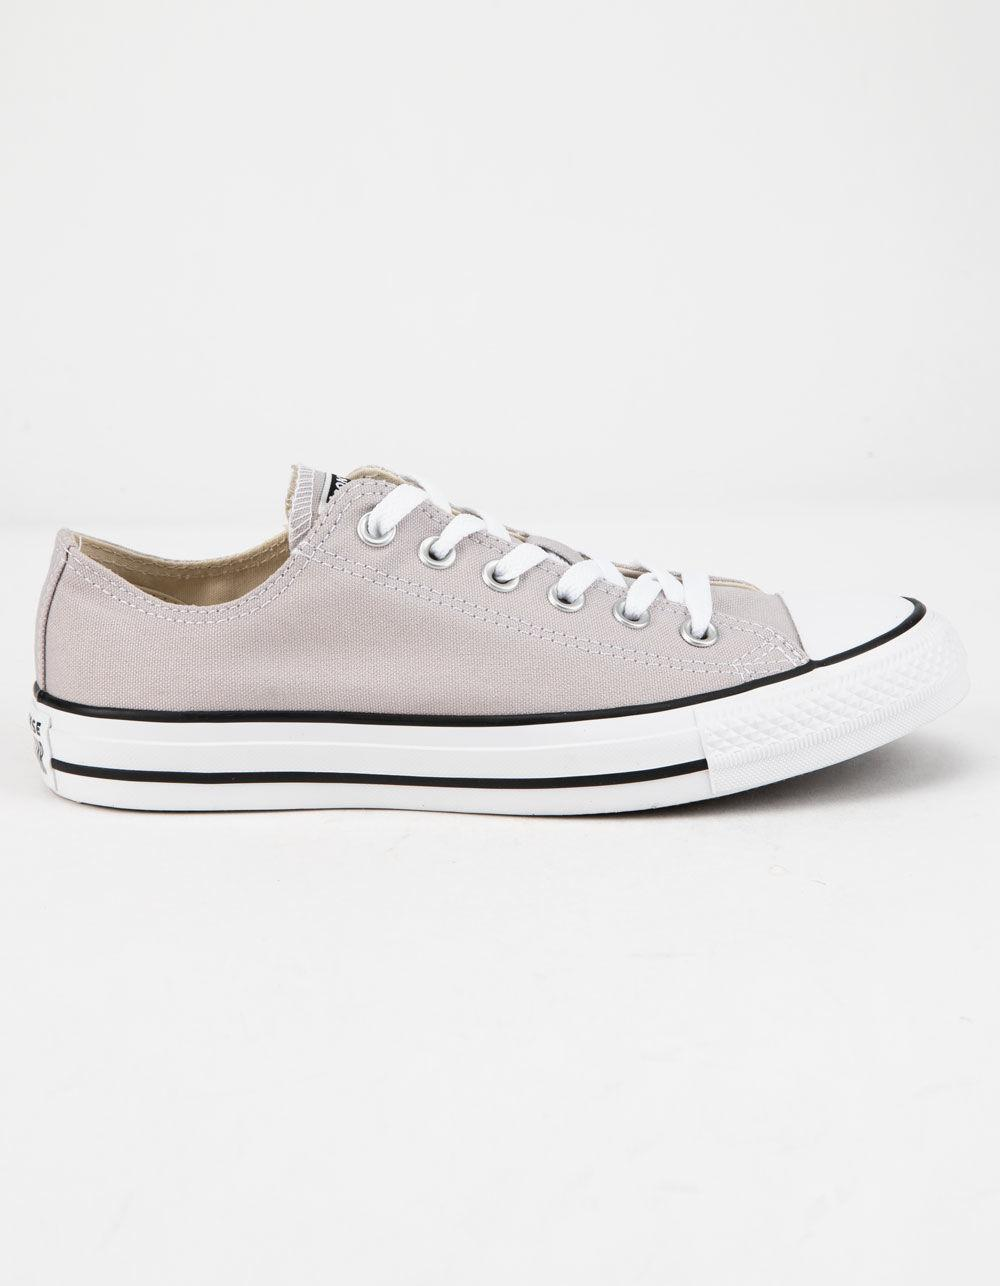 5f45d218b6ed Lyst - Converse Chuck Taylor All Star Violet Ash Low Top Womens ...